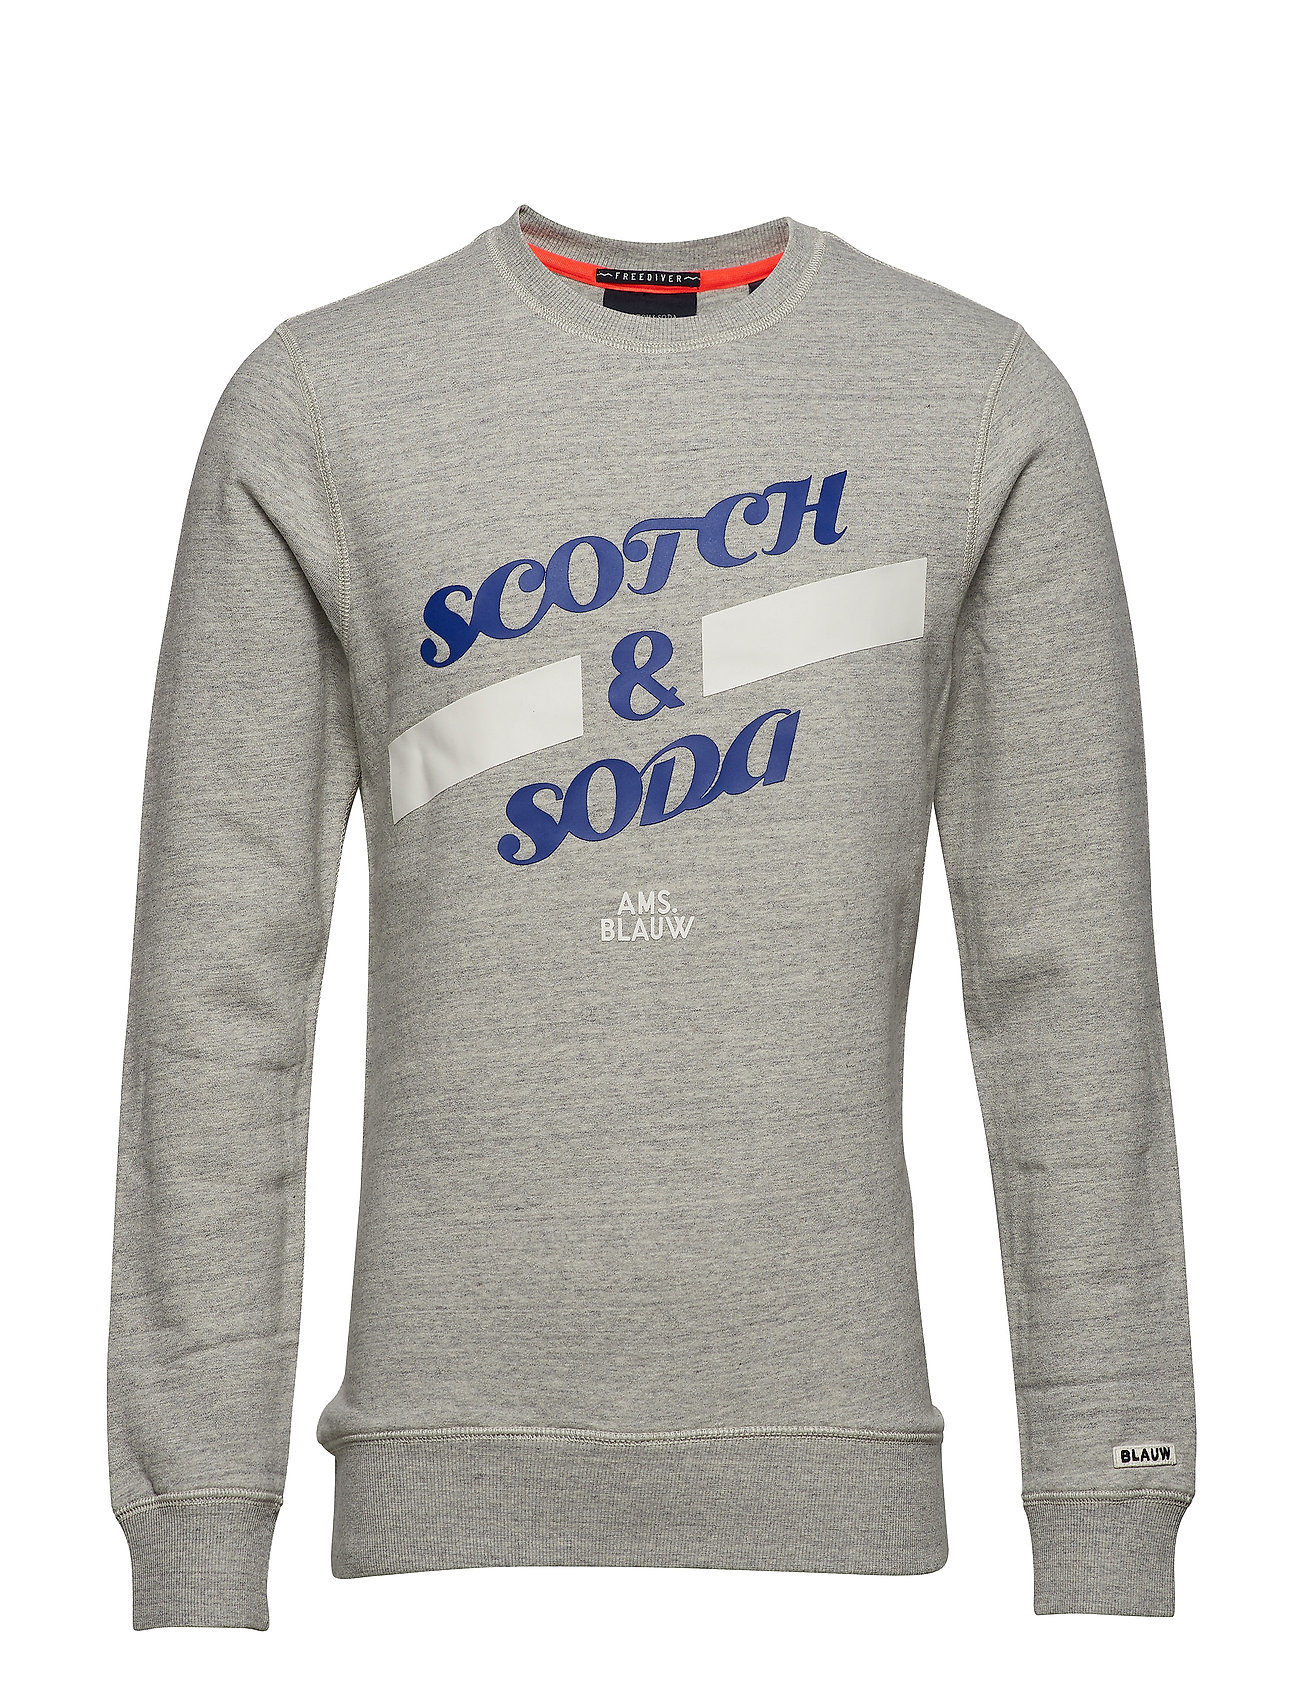 Scotch & Soda Basic Scotch & Soda sweat in regular fit - GREY MELANGE